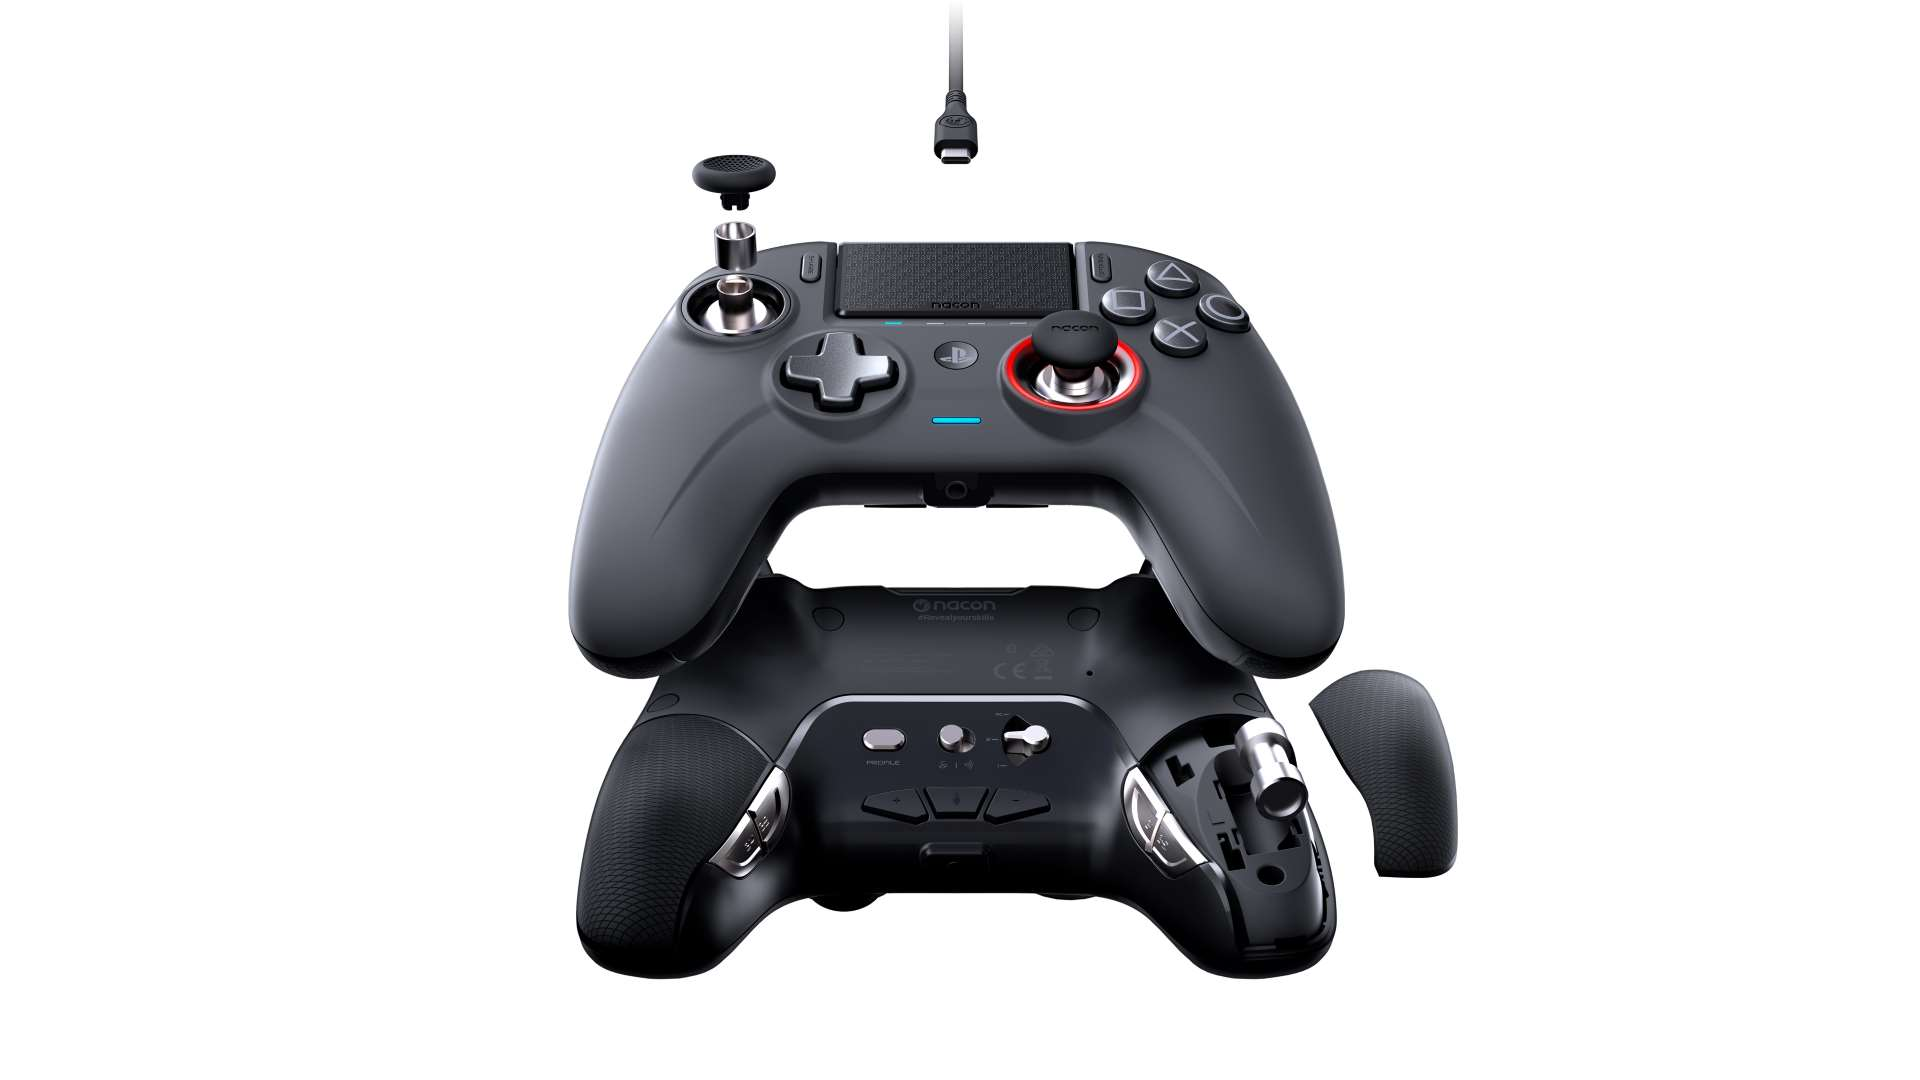 The Xbox One Elite controller has got some serious PS4